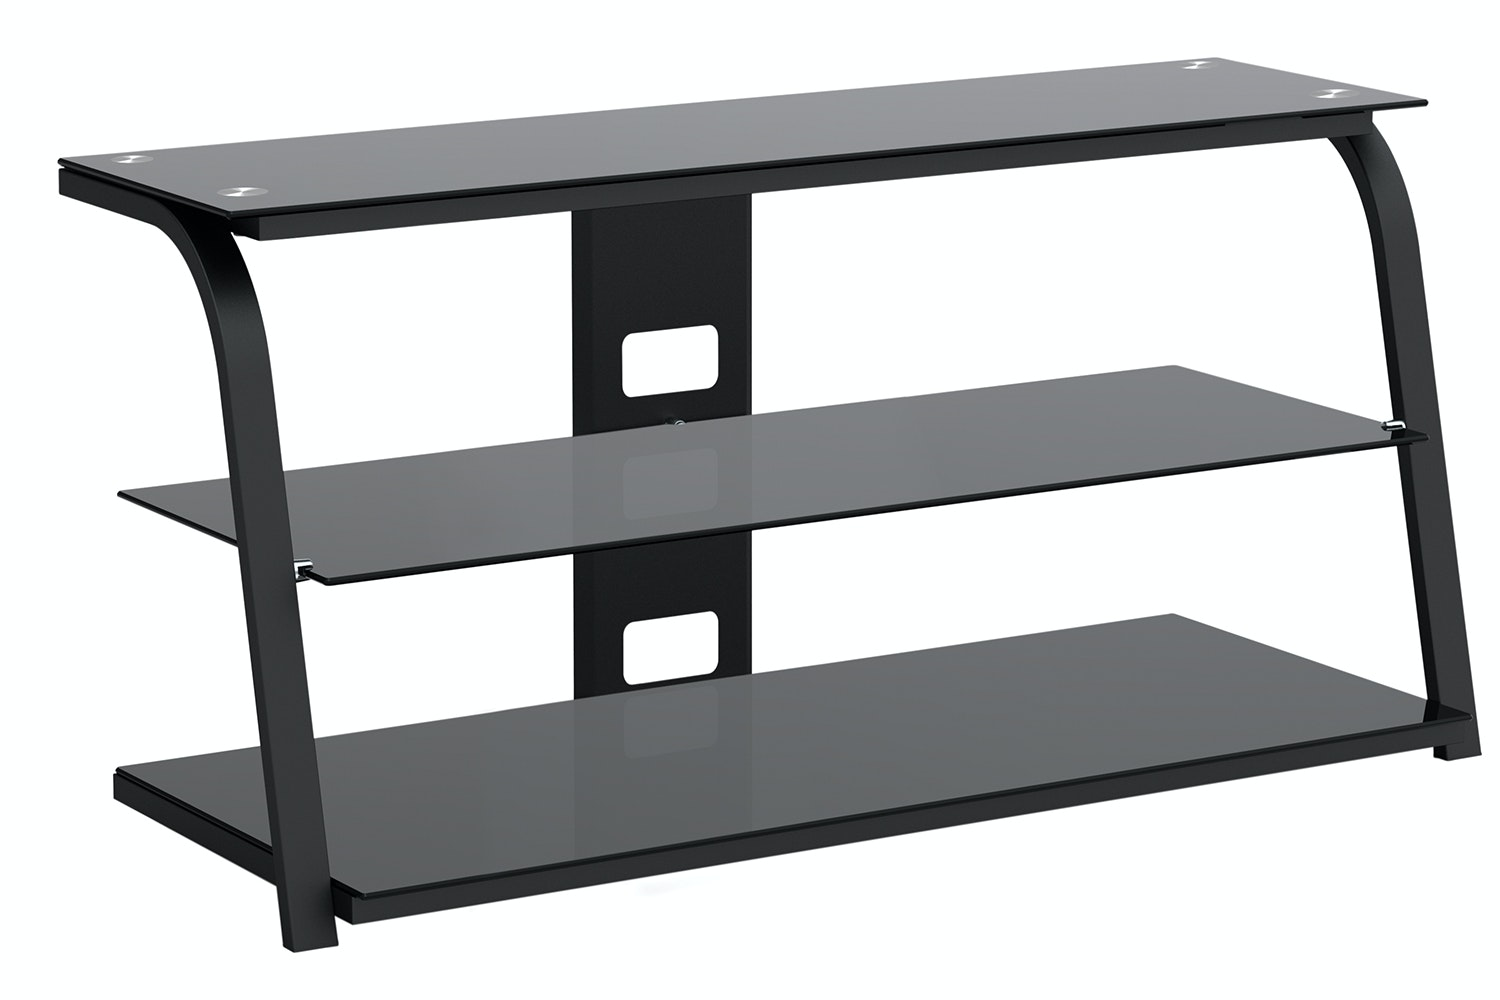 Awatere 3 Shelf 32 - 55 TV Table Black by Pudney and Lee